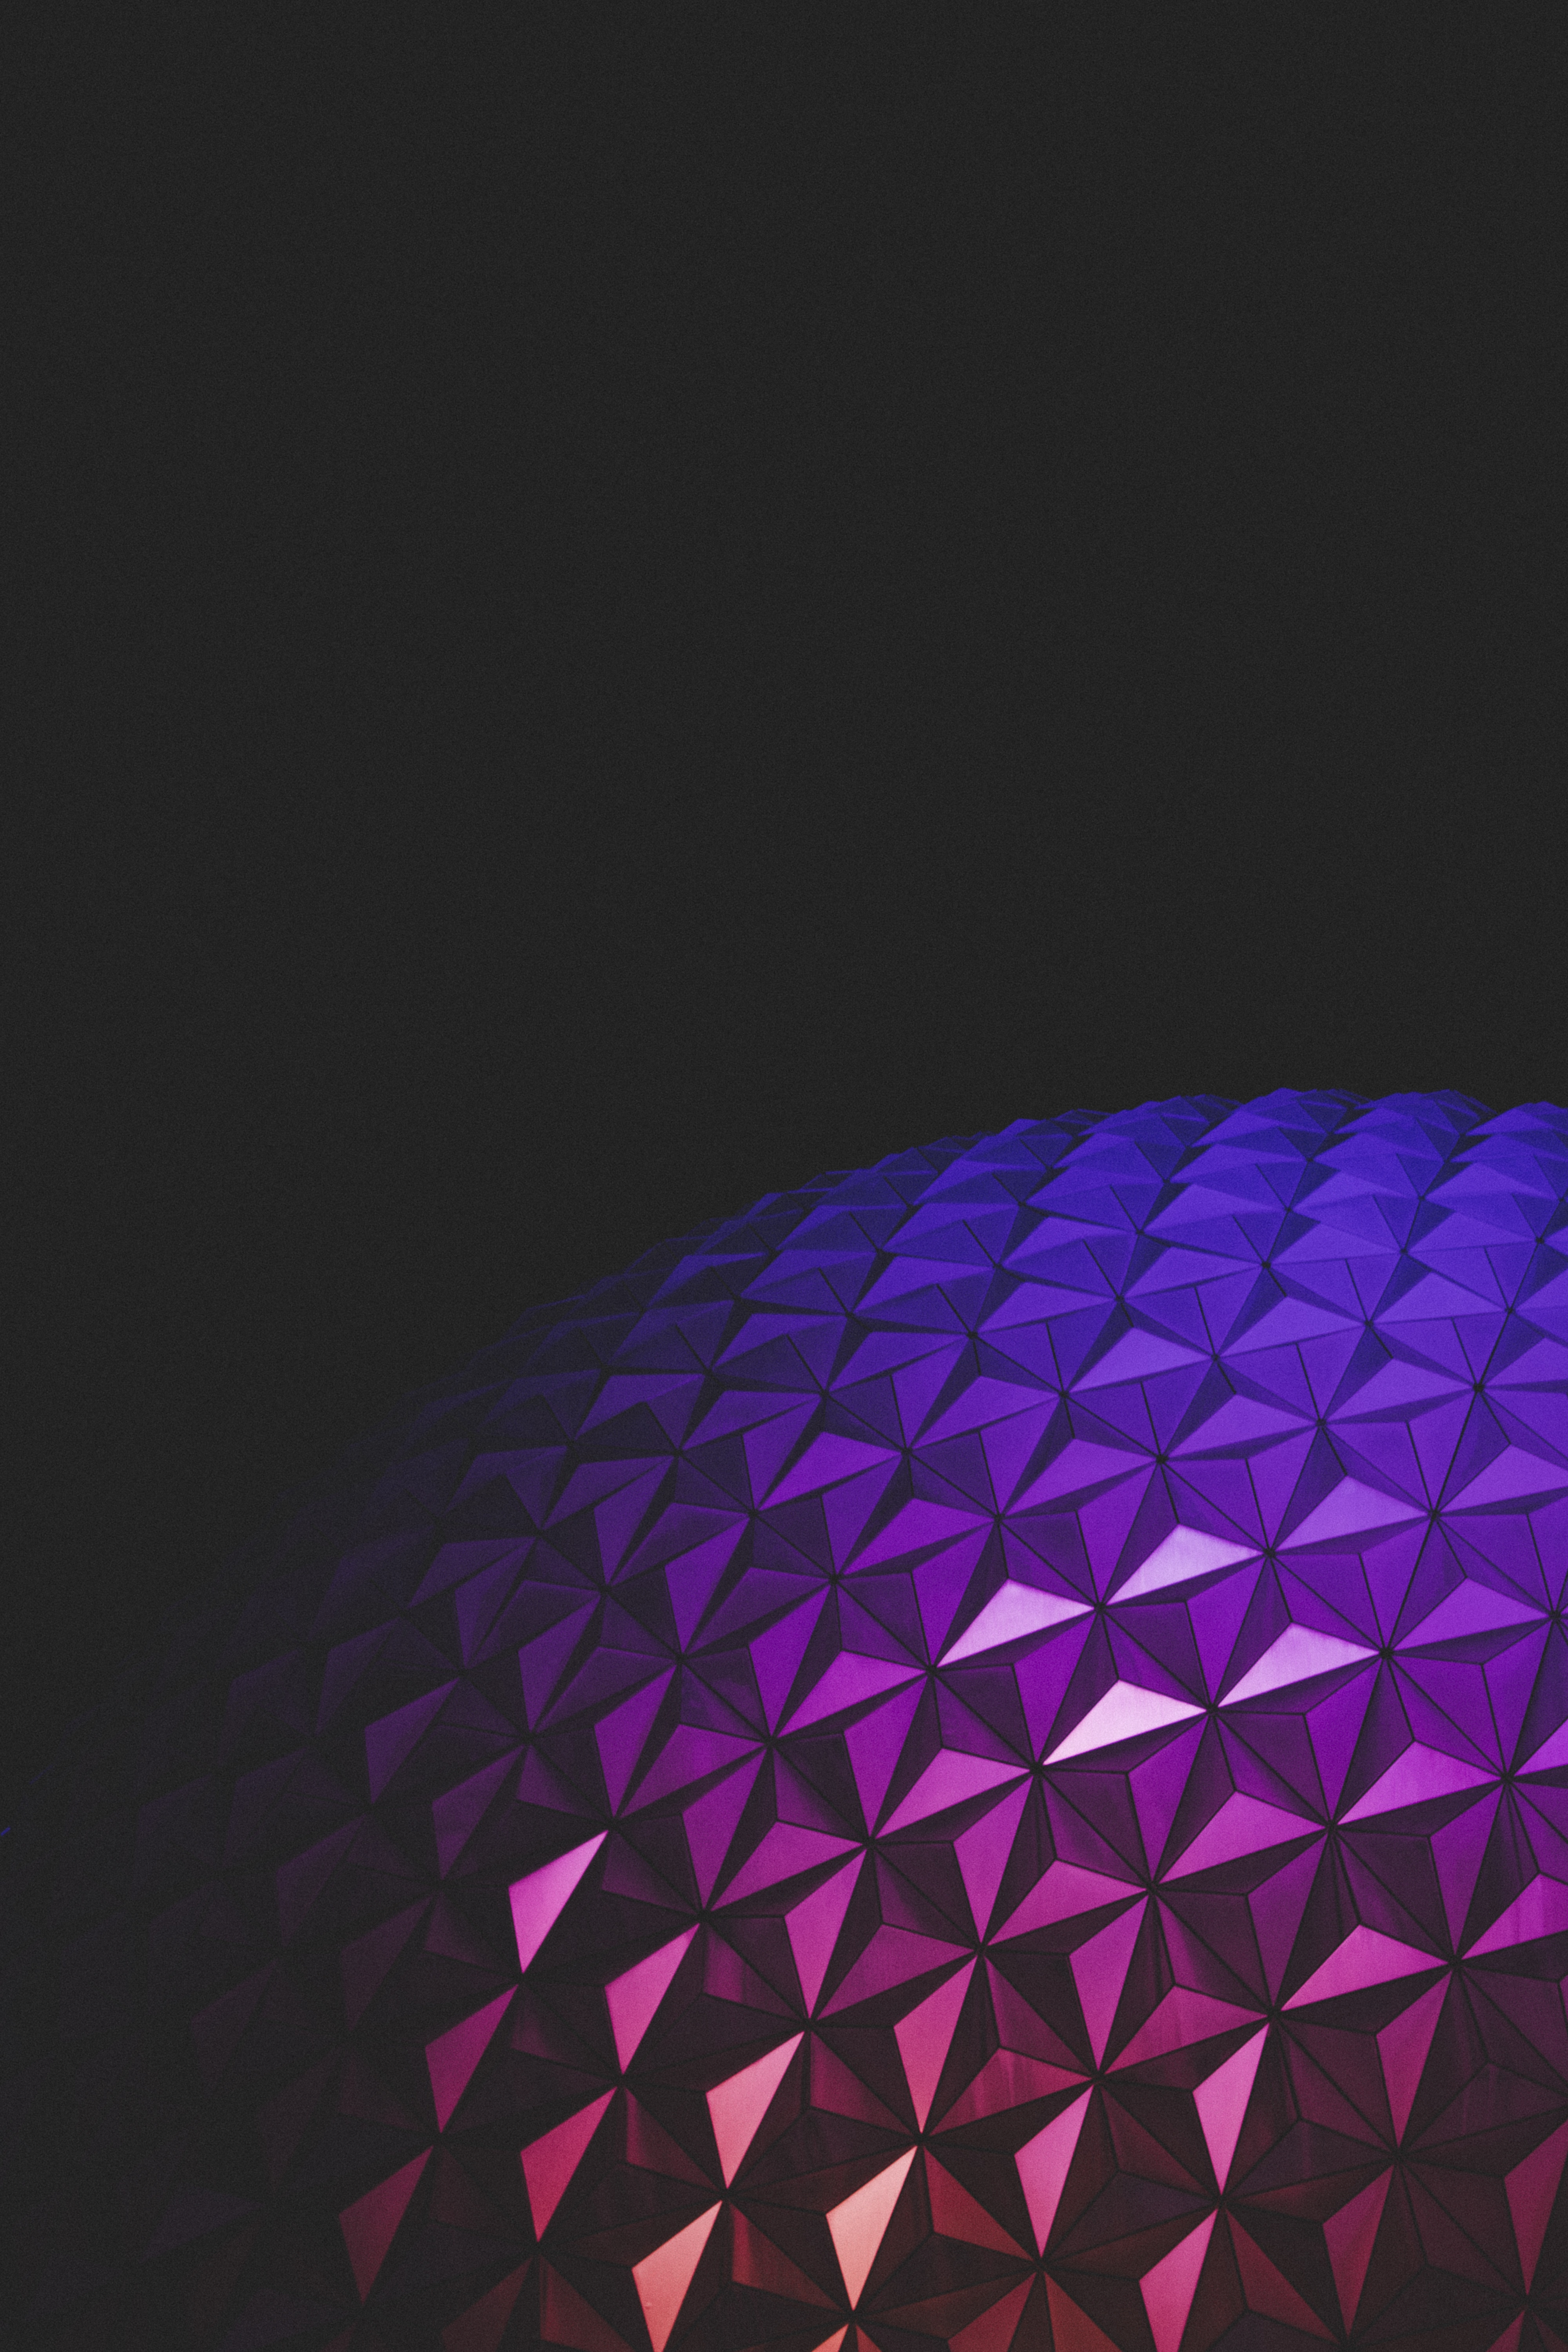 79306 download wallpaper Dark, Ball, Relief, Gradient, Shine, Light, Architecture screensavers and pictures for free